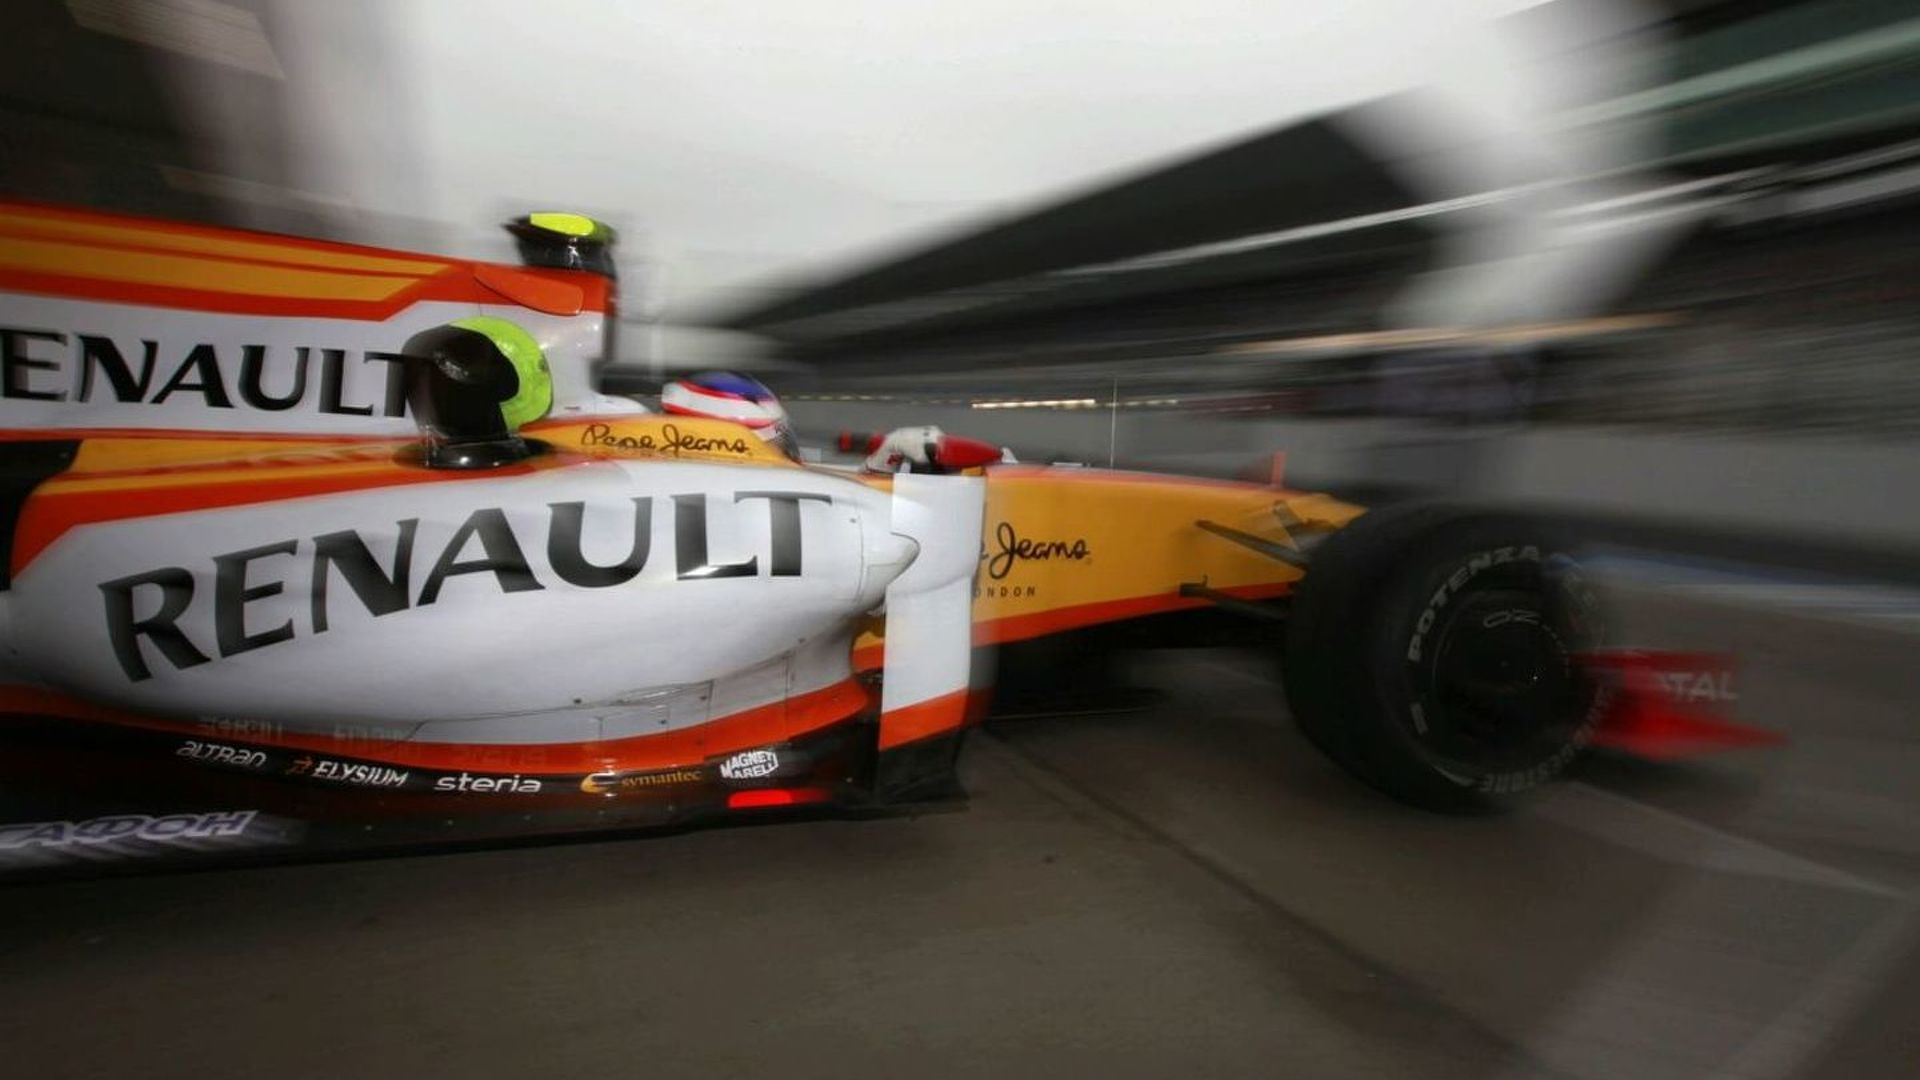 Rumour - Renault set to race new car livery?